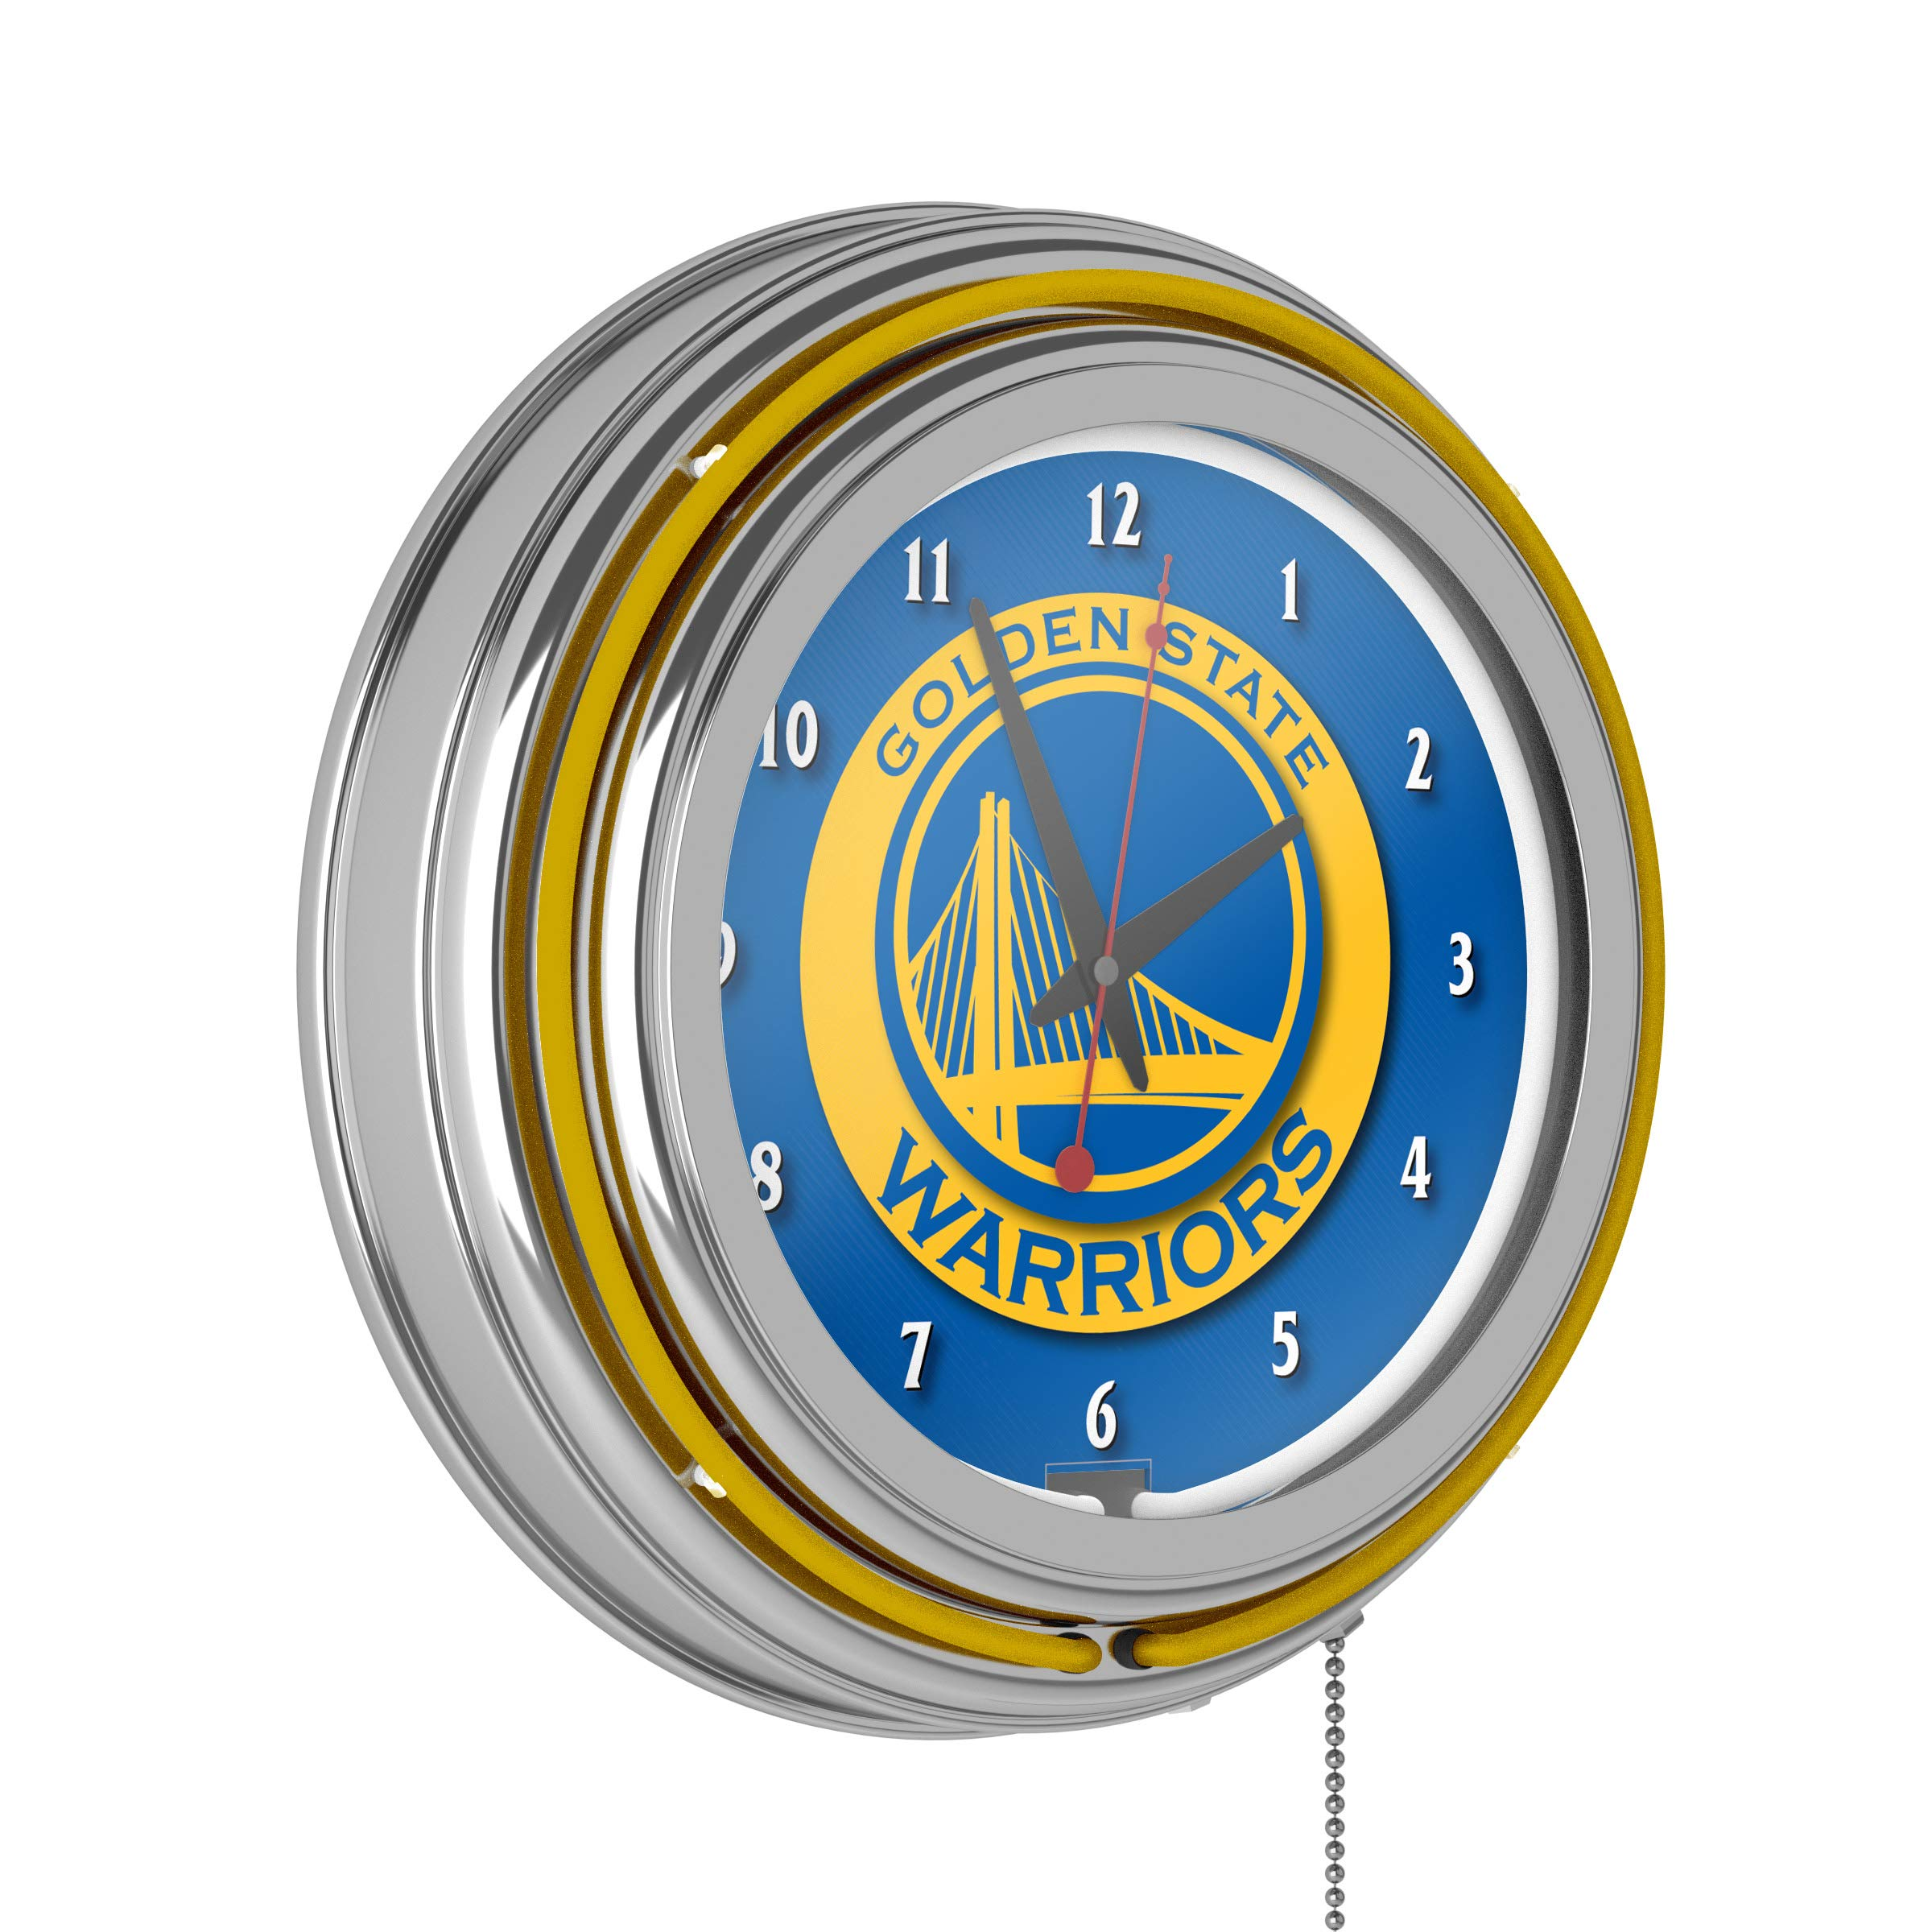 Golden State Warriors NBA Chrome Double Ring Neon Clock by Trademark Gameroom